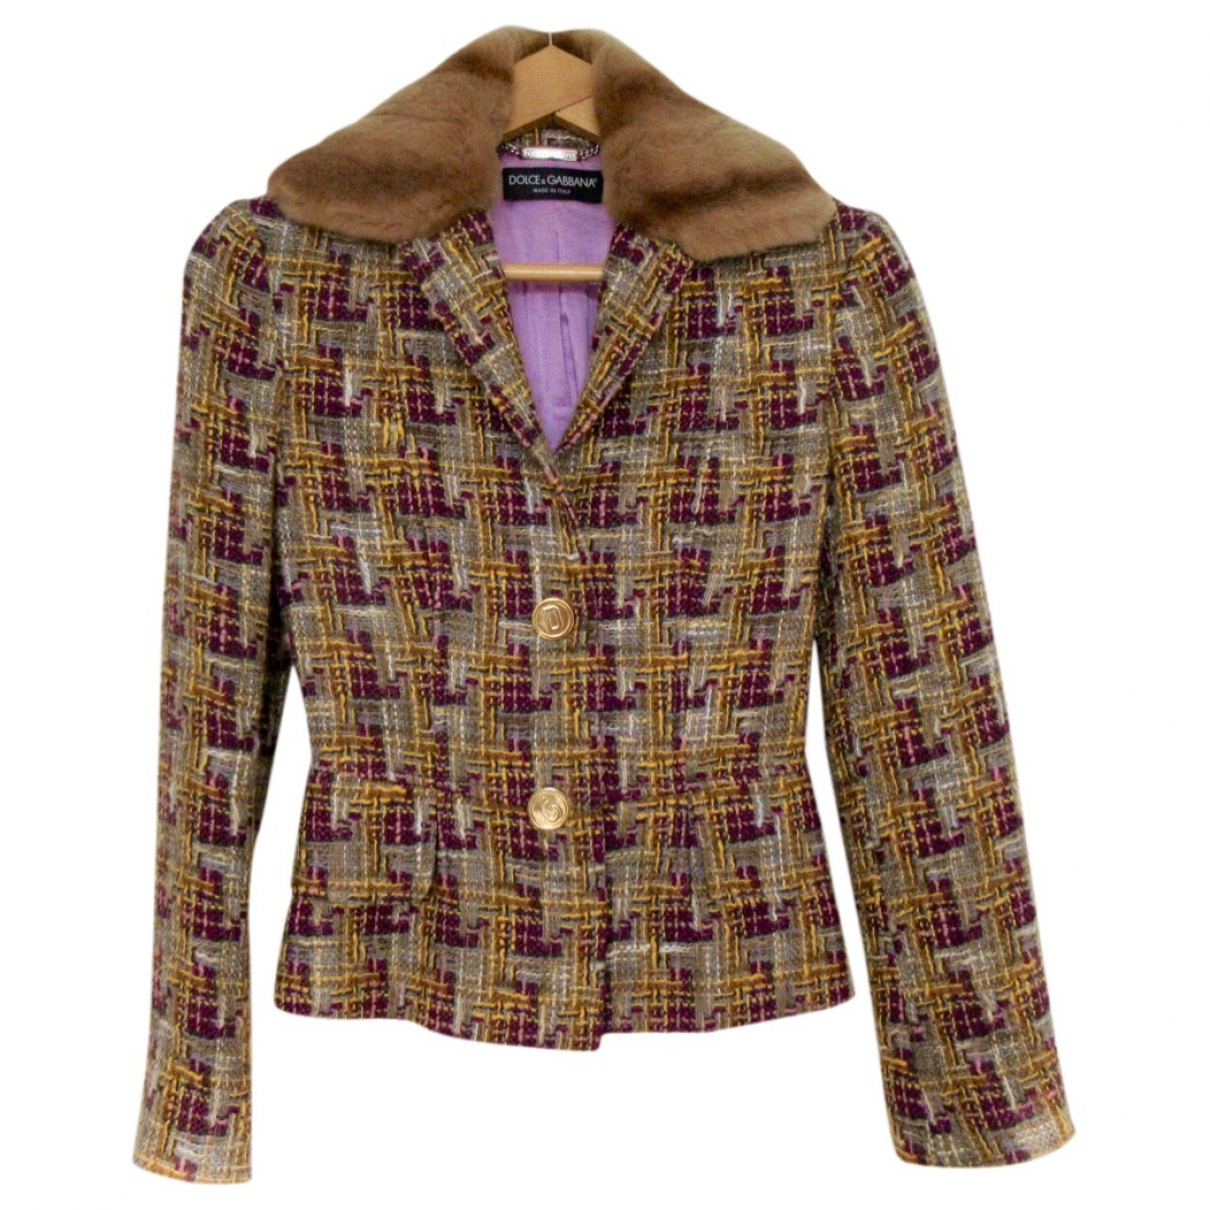 Dolce & Gabbana \N Beige Tweed jacket for Women 38 IT